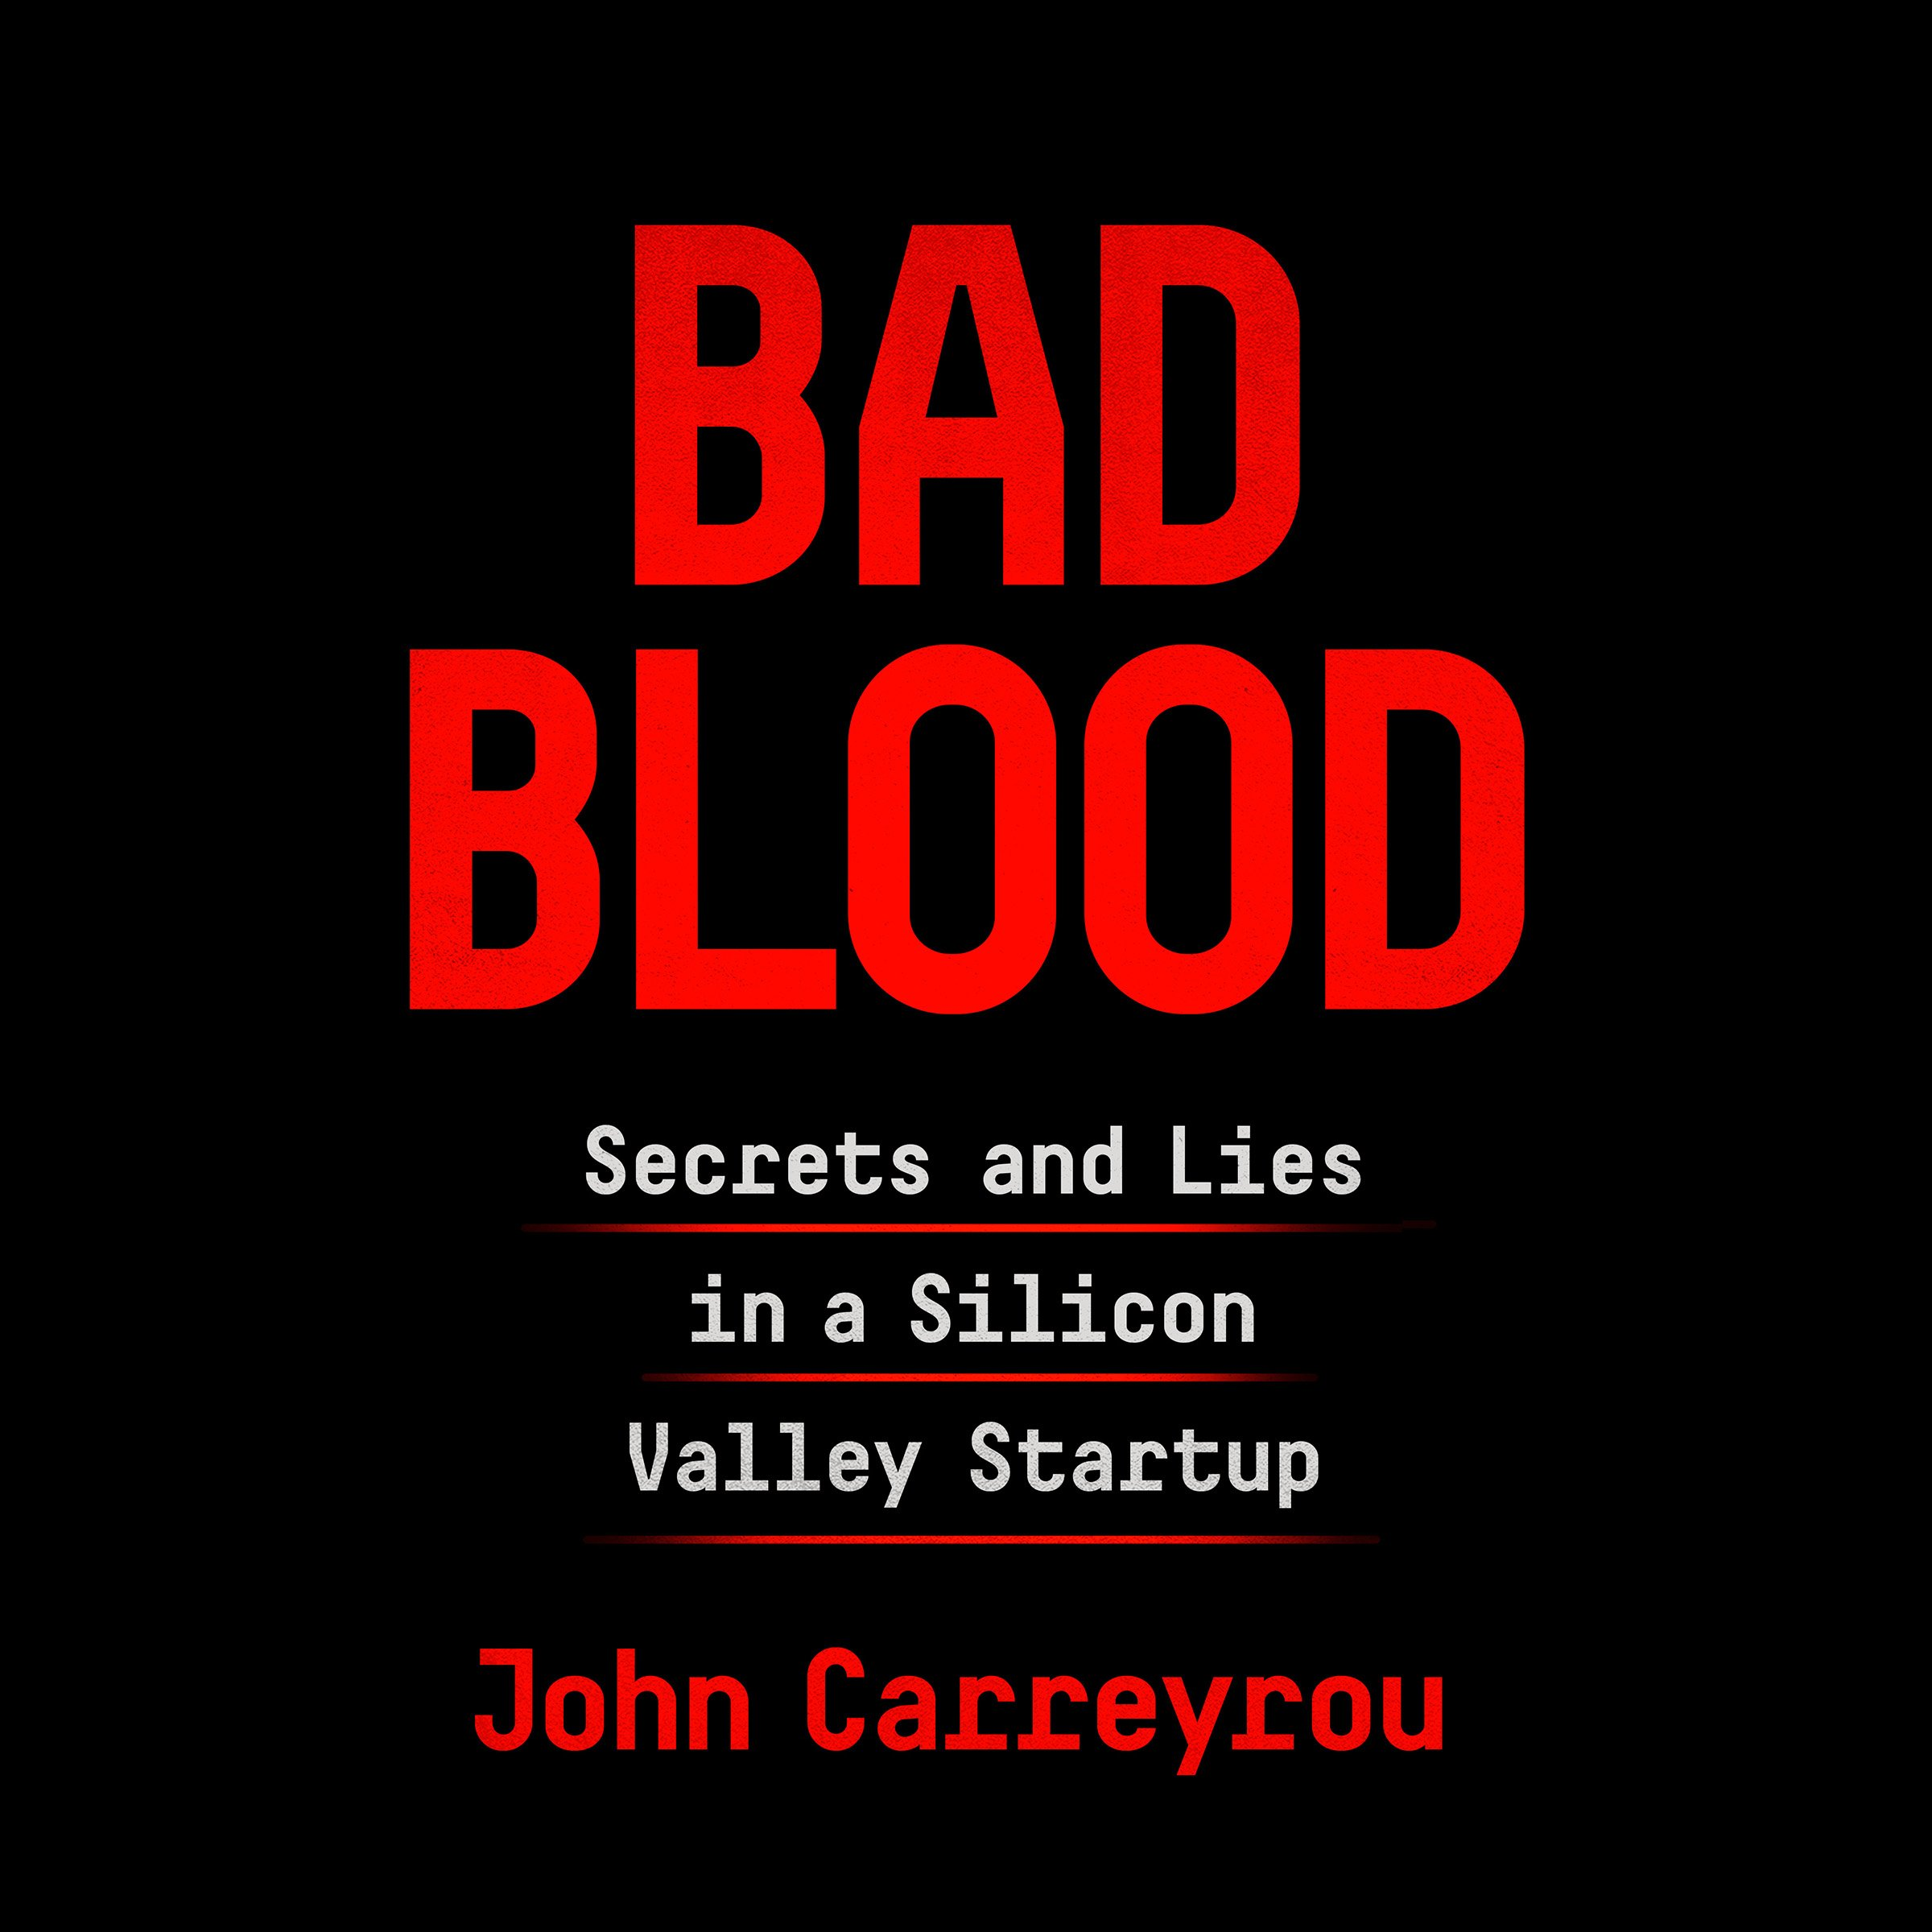 Image OfBad Blood: Secrets And Lies In A Silicon Valley Startup